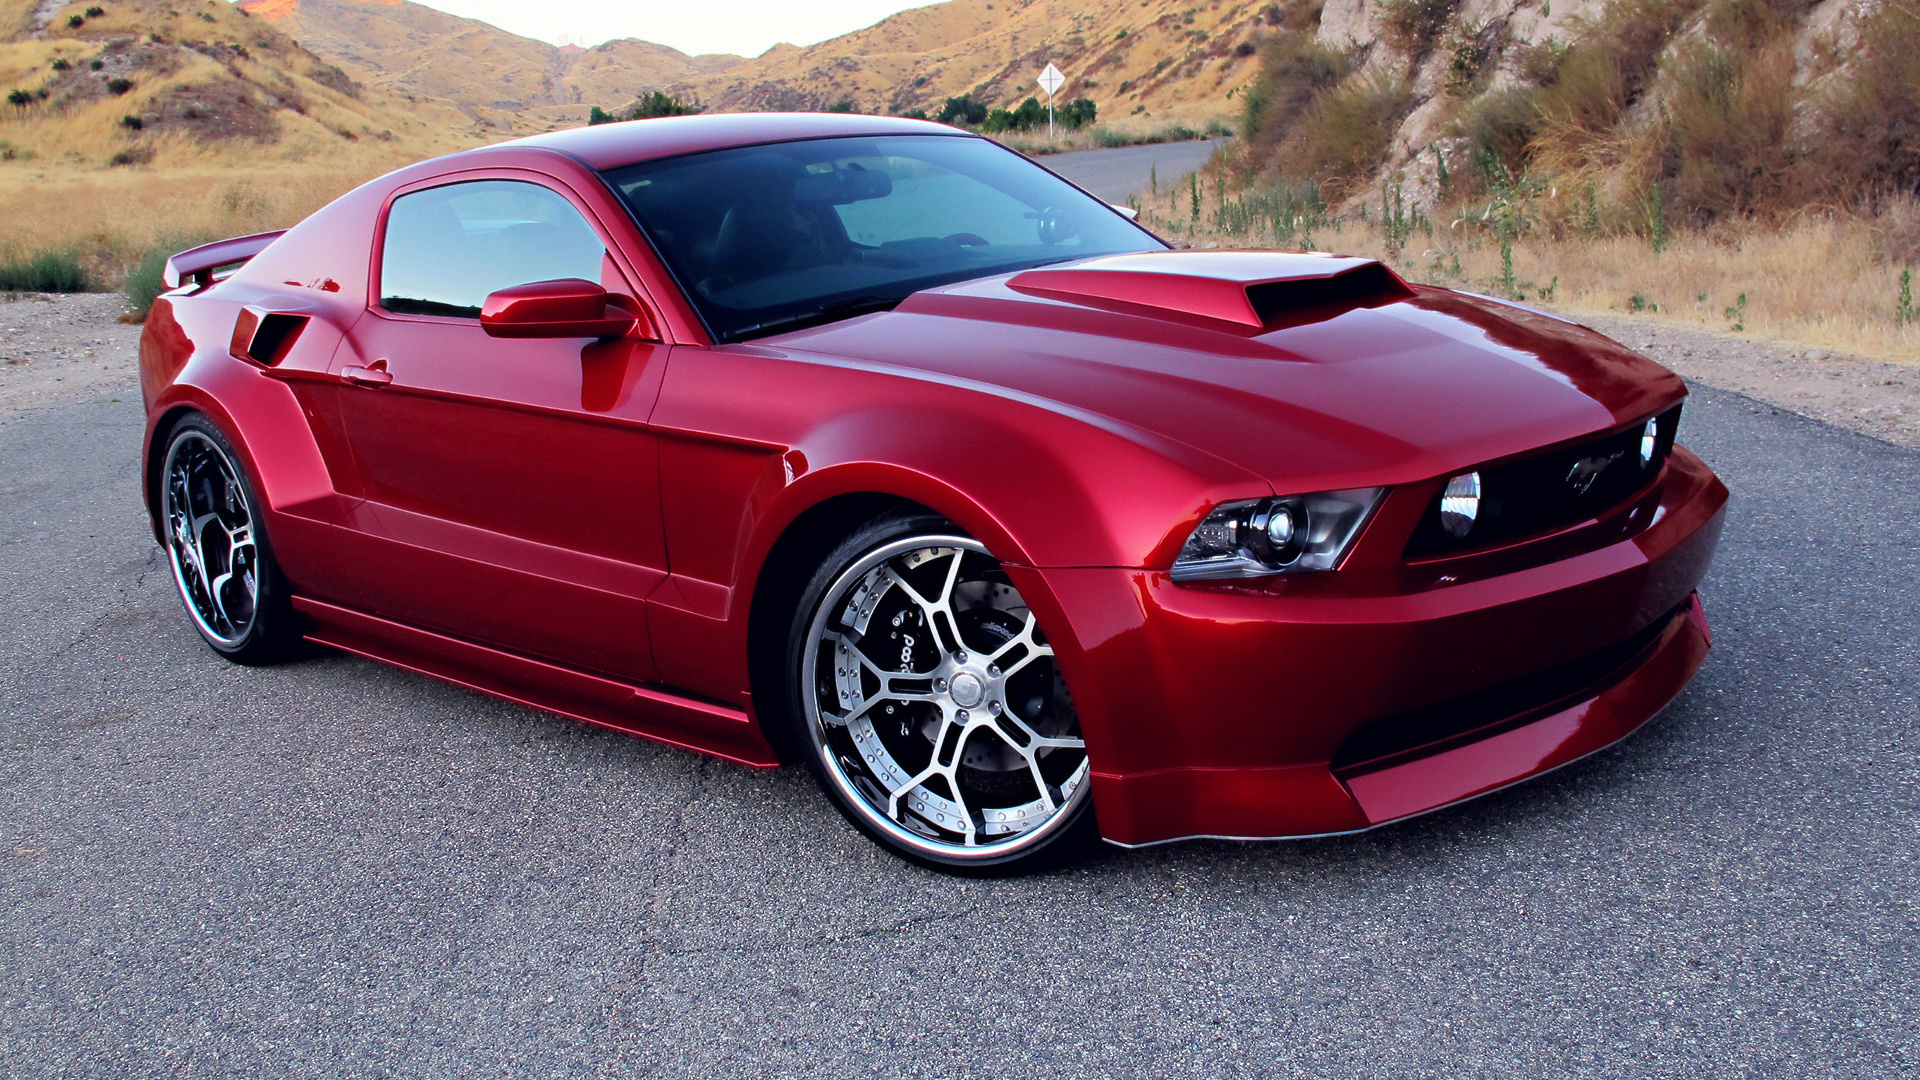 Ford Mustang GT Red Tuning Wide Body Wallpaper For Iphone